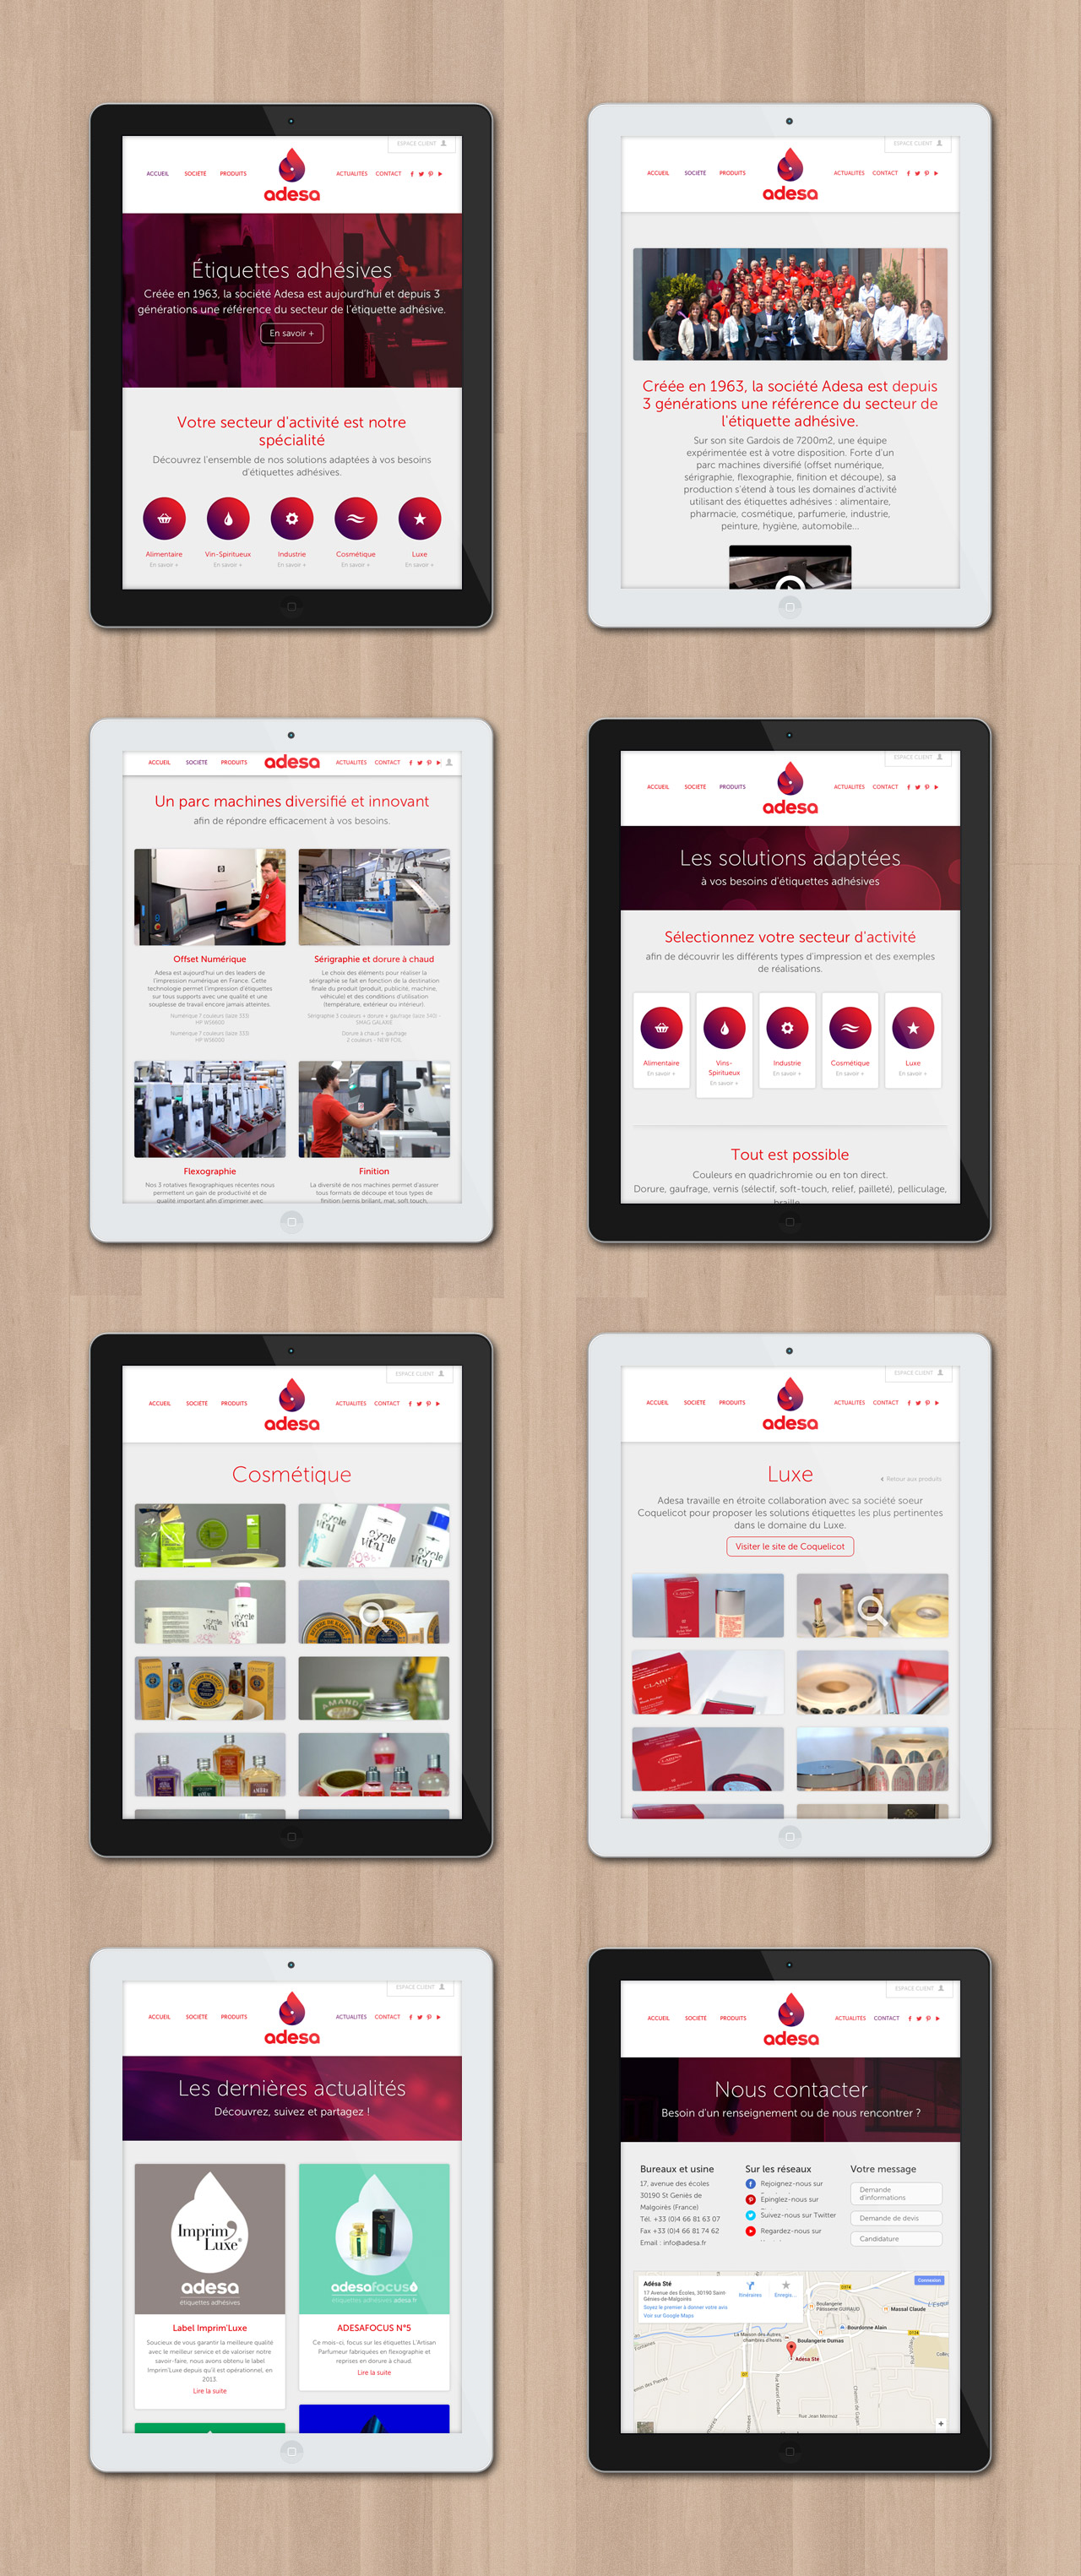 adesa-site-tablette-responsive-design-creation-communication-caconcept-alexis-cretin-graphiste